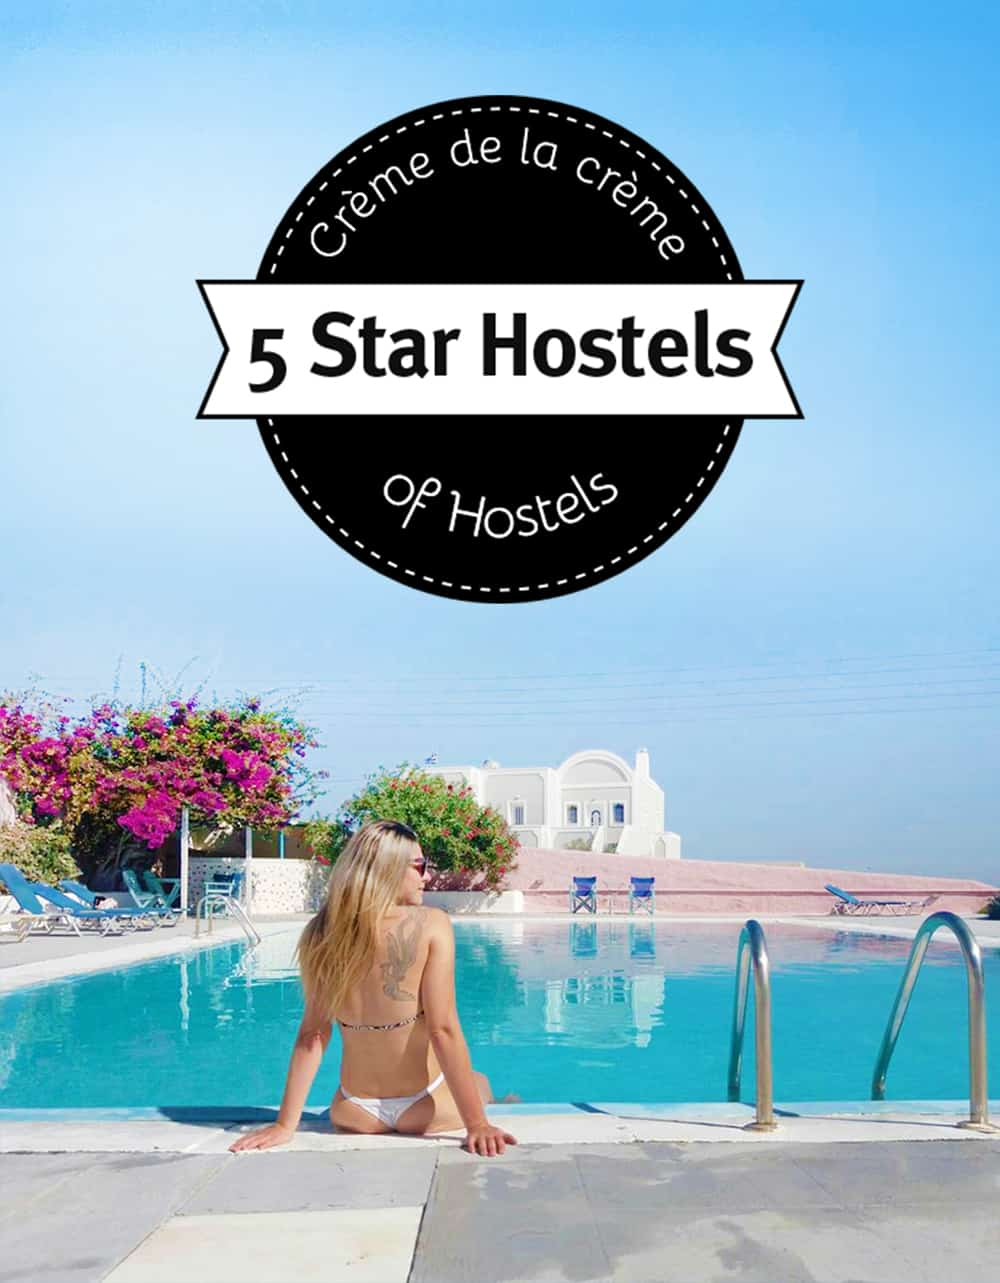 Best hostel in Santorini Greece: Caveland Hostel